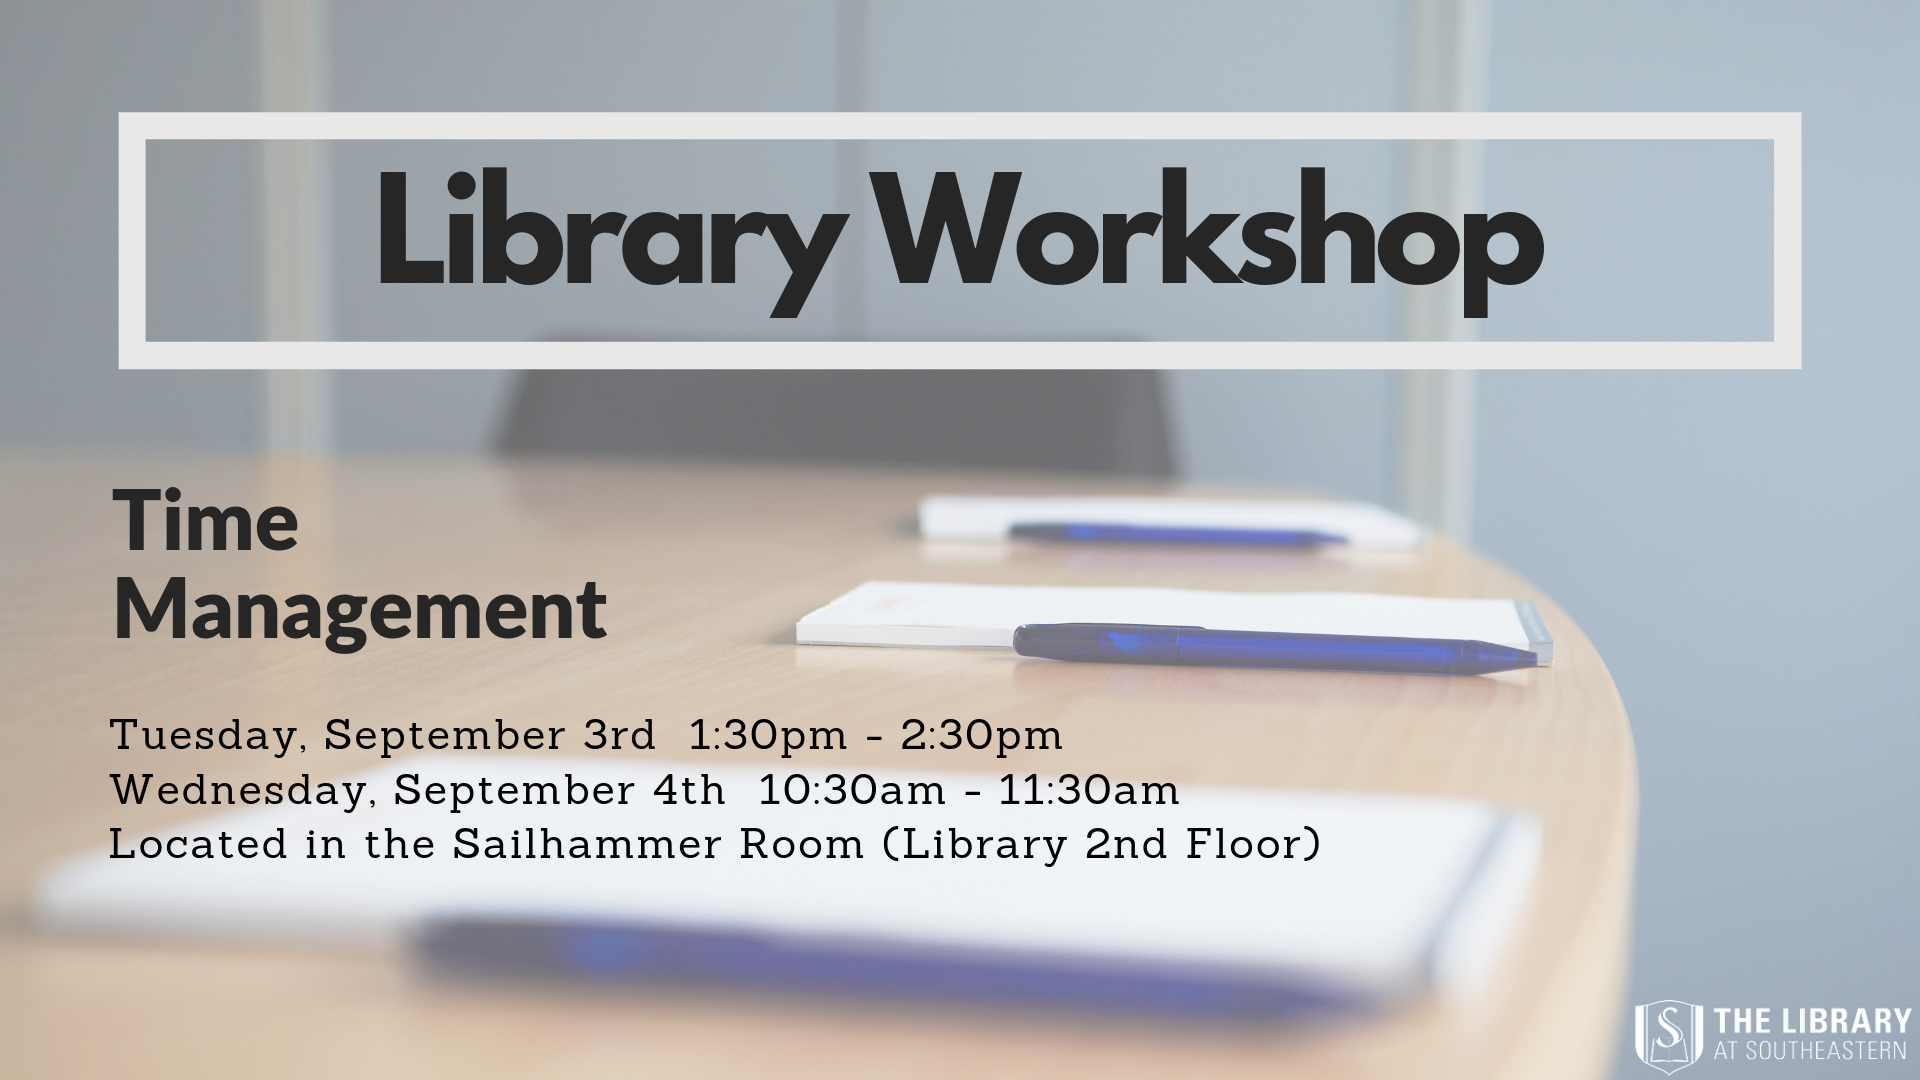 Library Workshop: Time Management